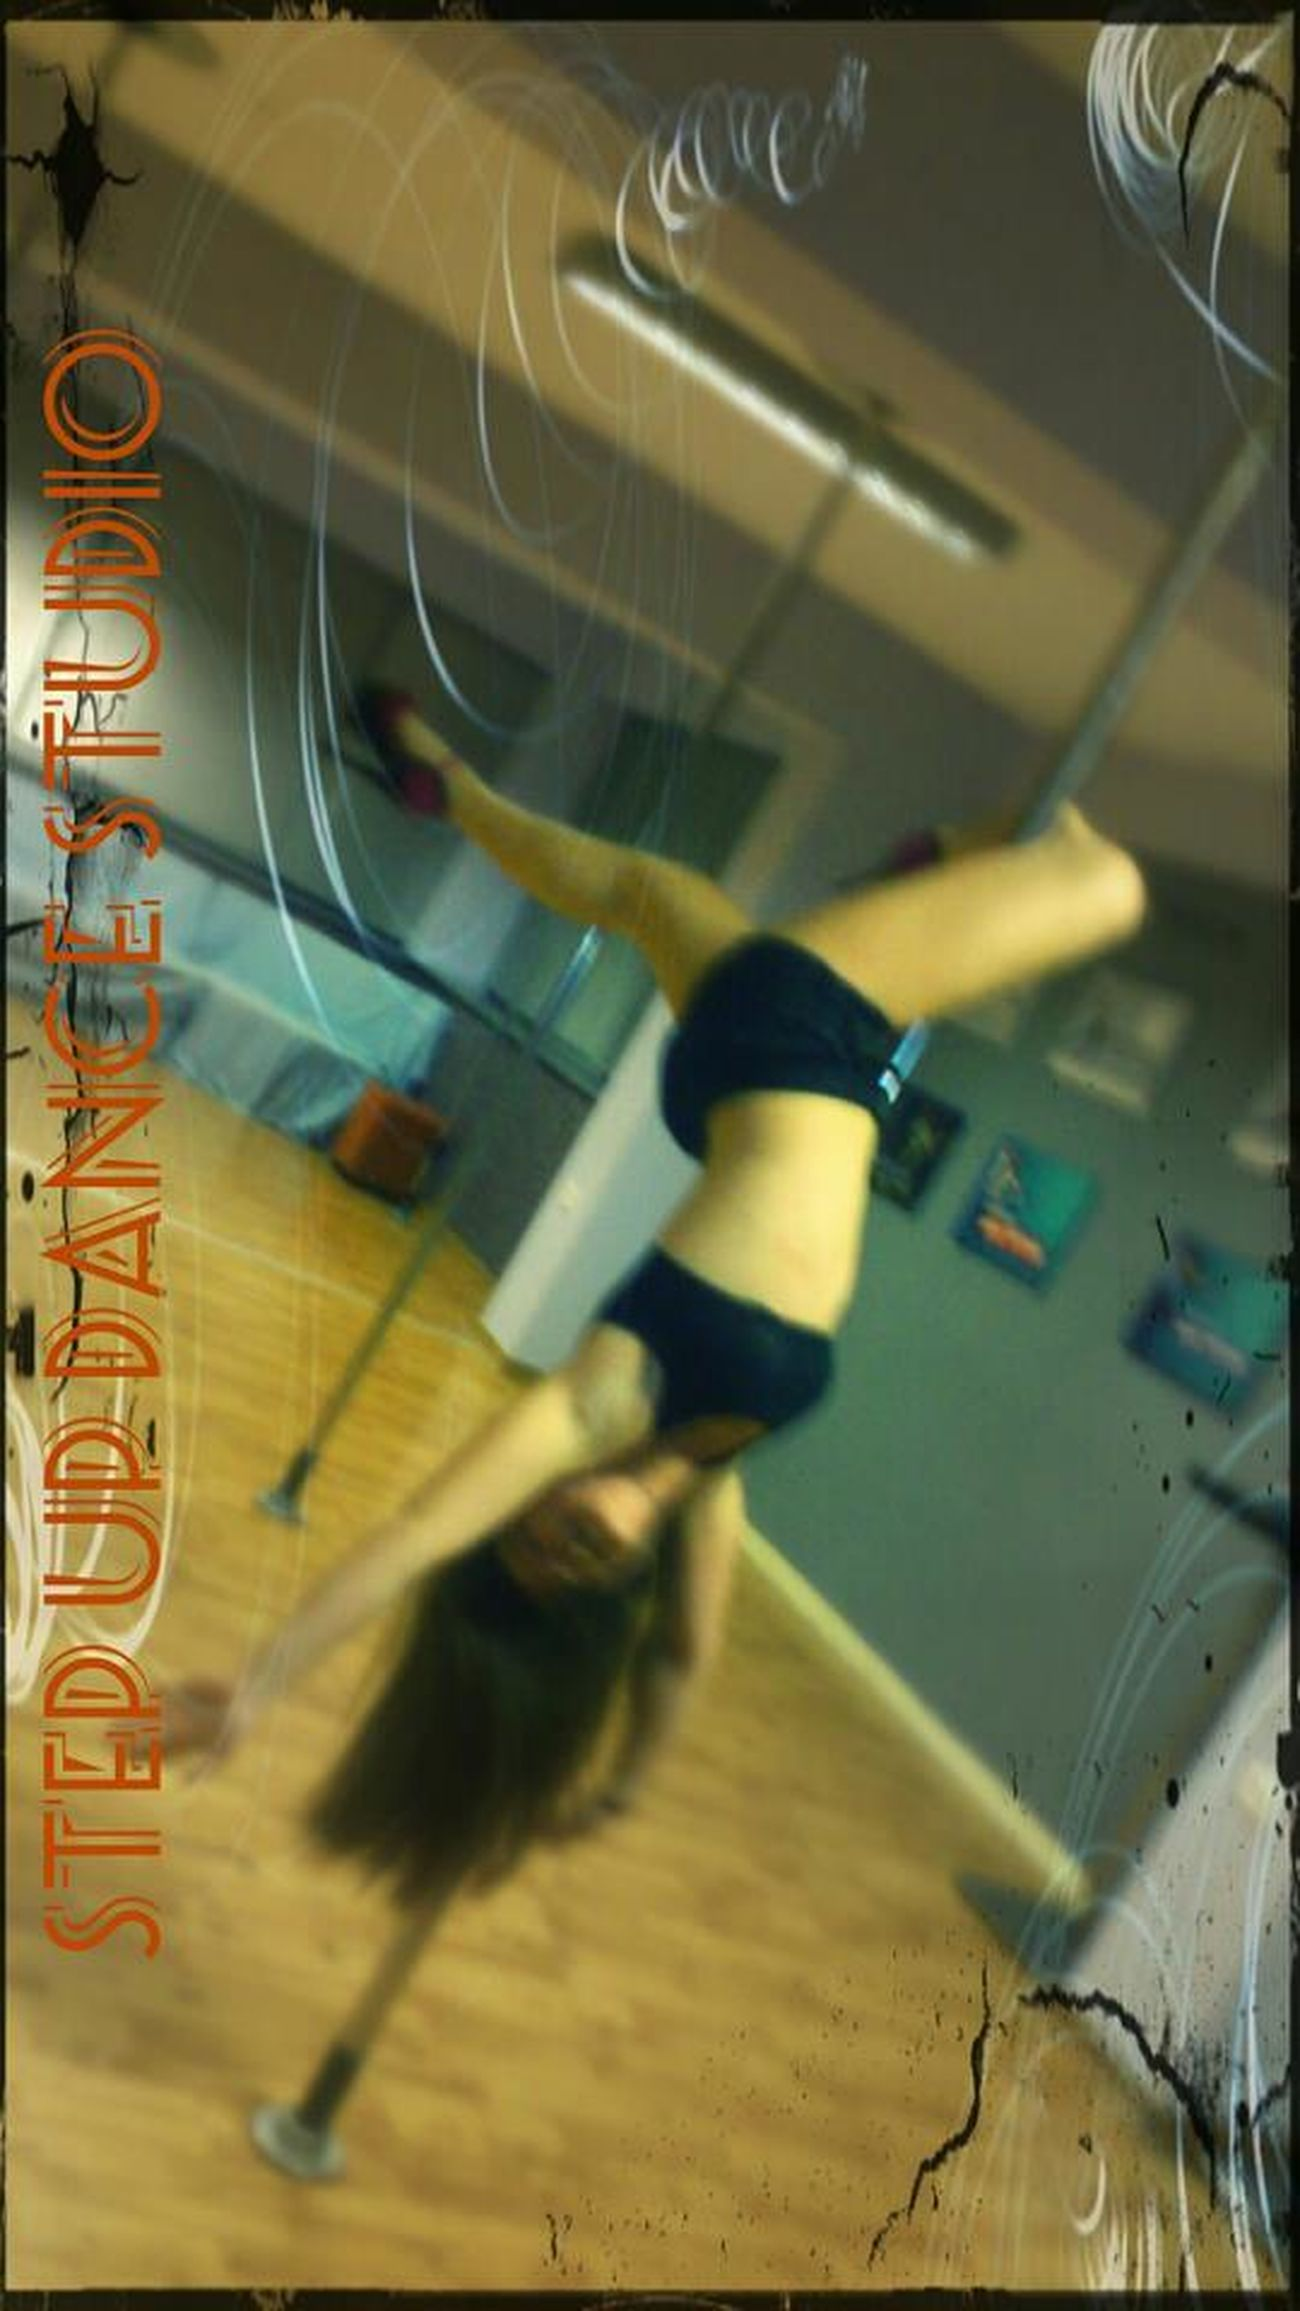 Poledance Poleart Pole Dancing